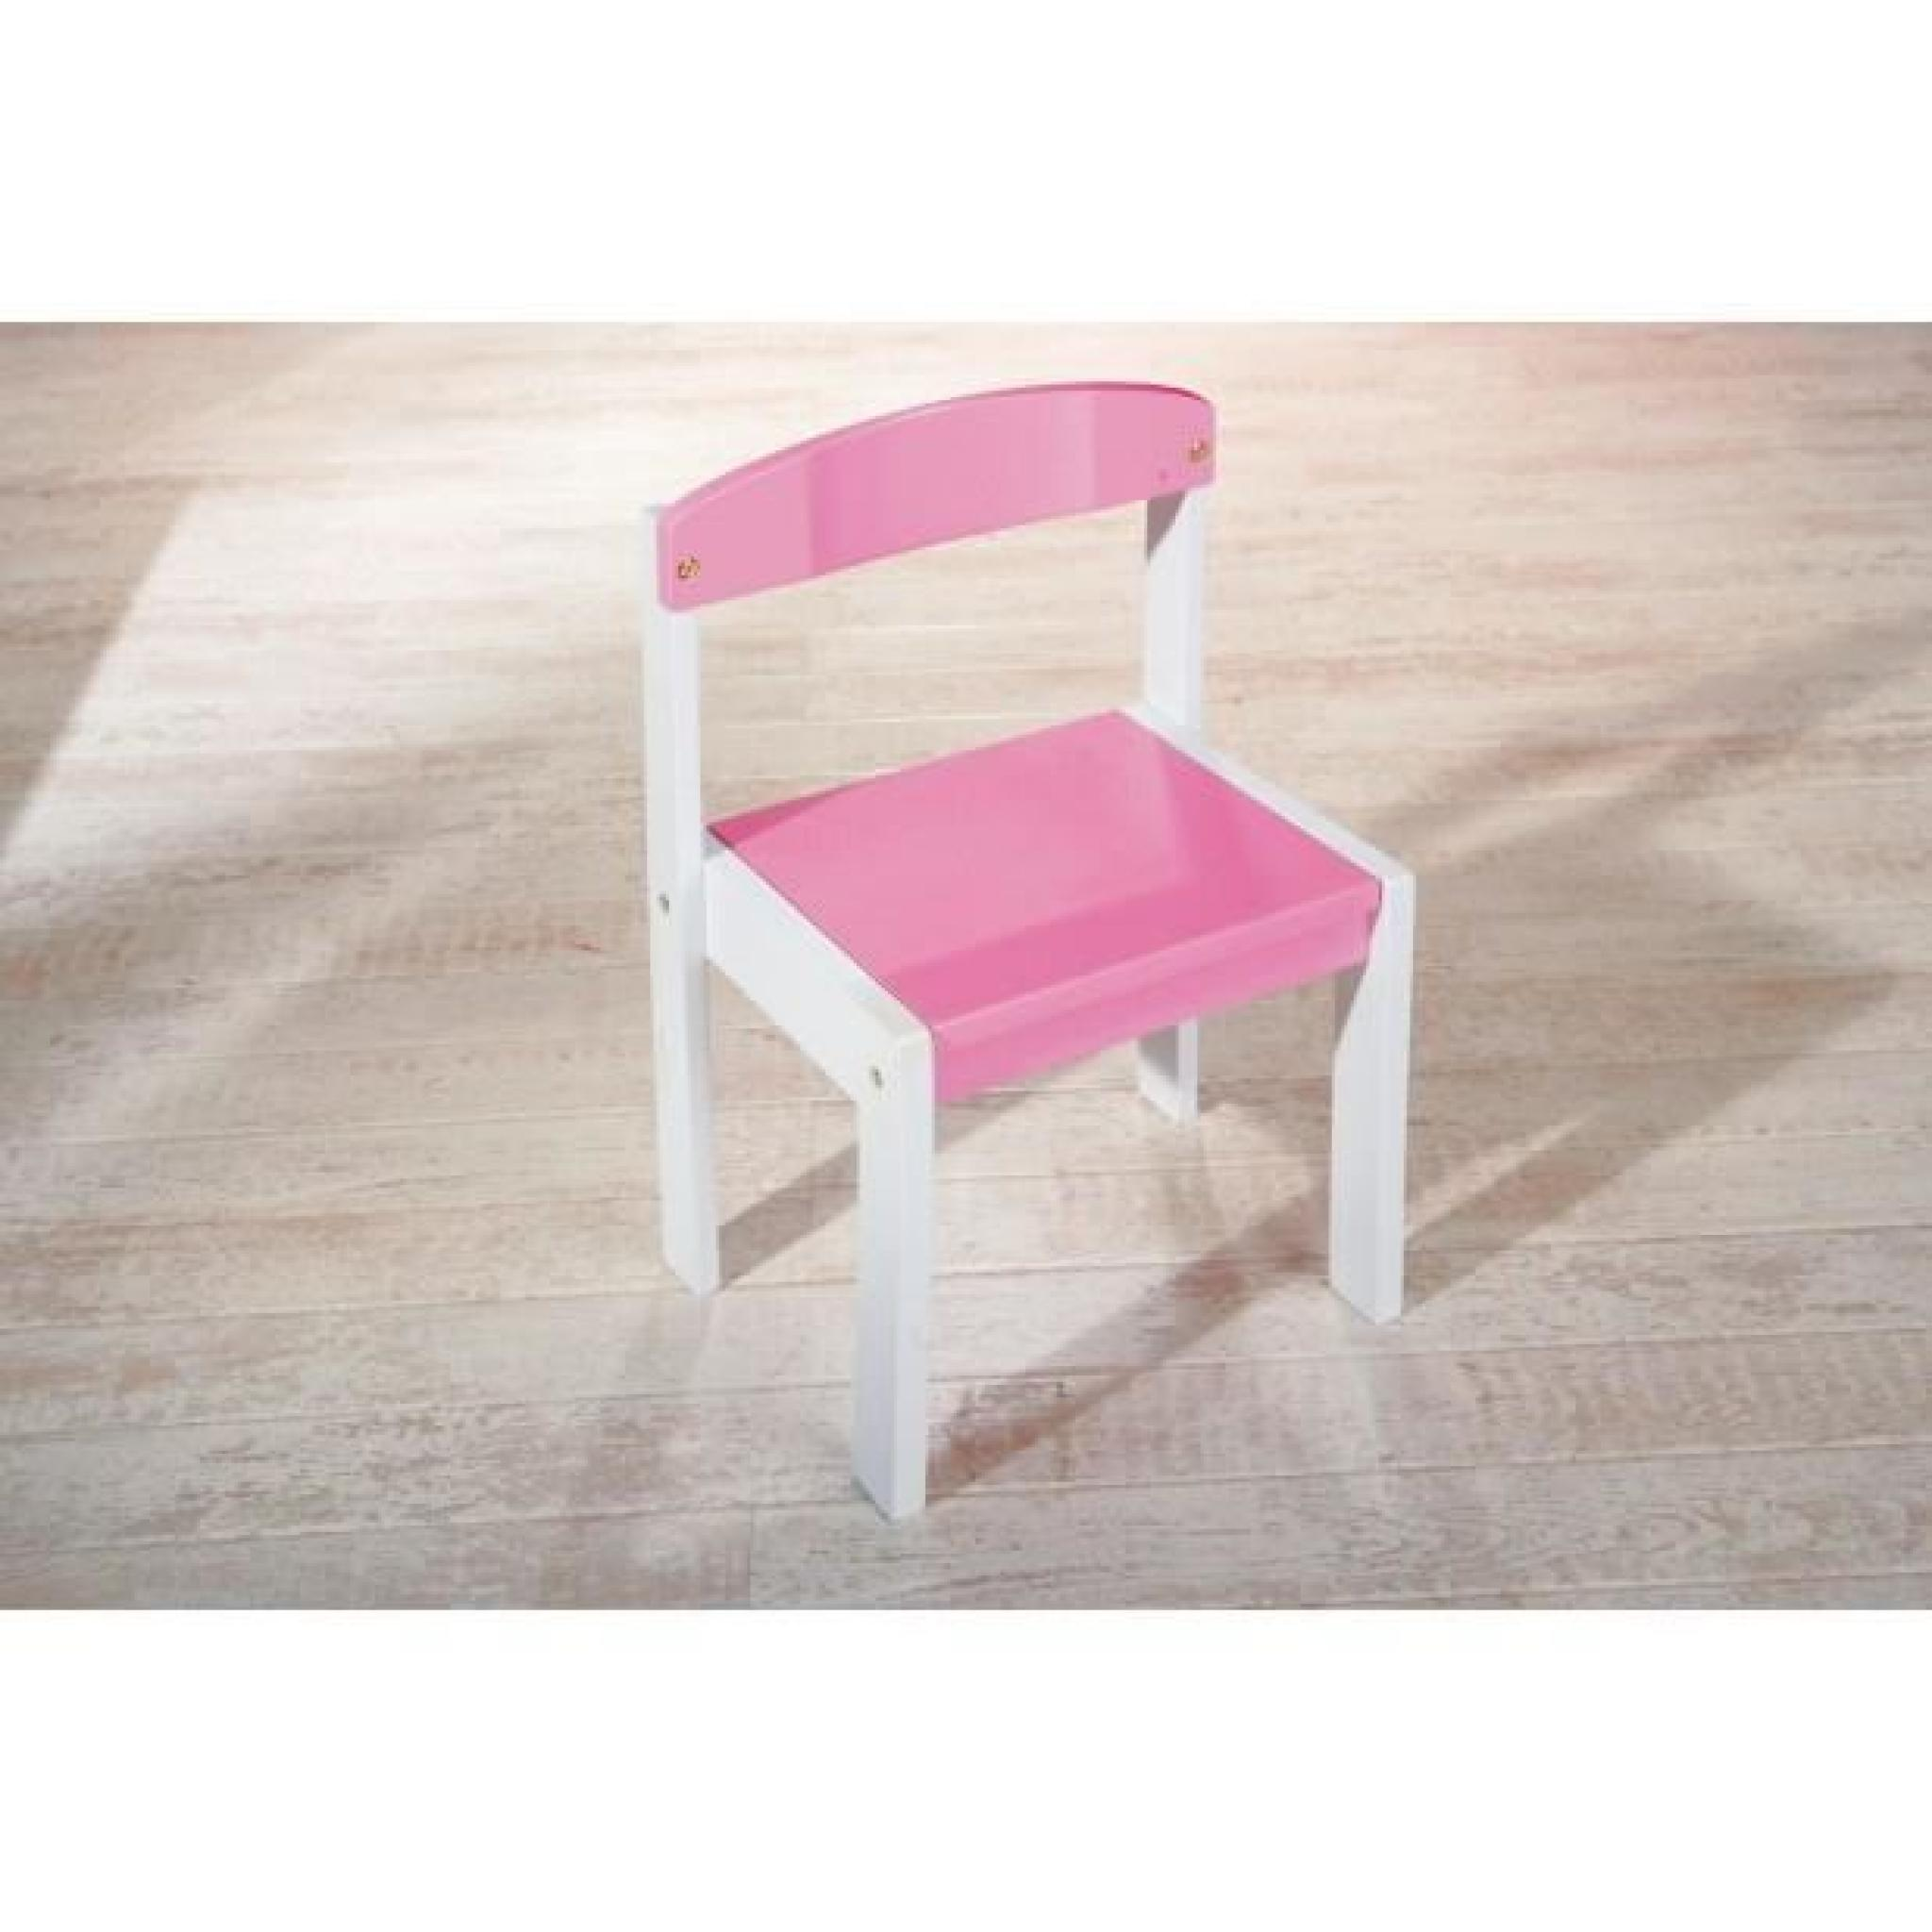 chaise pour enfant - pin massif & MDF rose & blanc